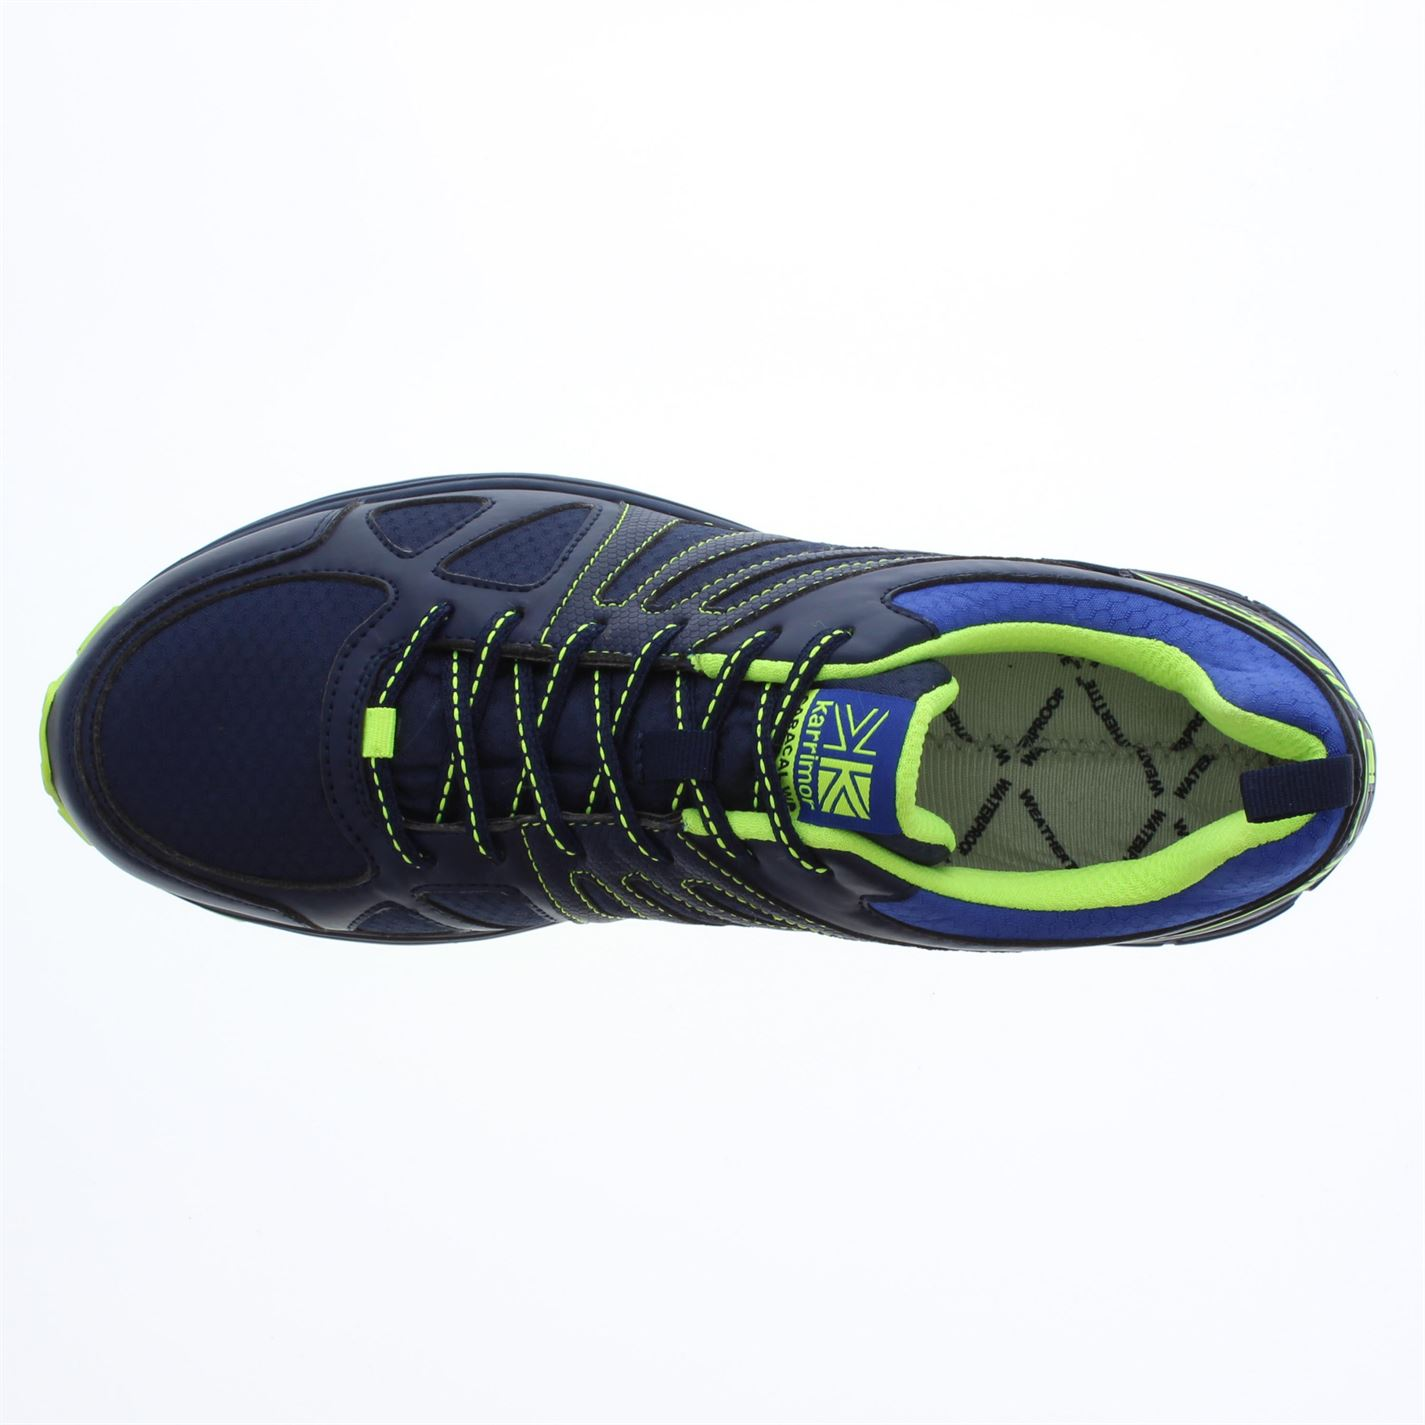 Karrimor-Mens-Caracal-Waterproof-Trail-Running-Shoes-Trainers-Lace-Up-Breathable thumbnail 5